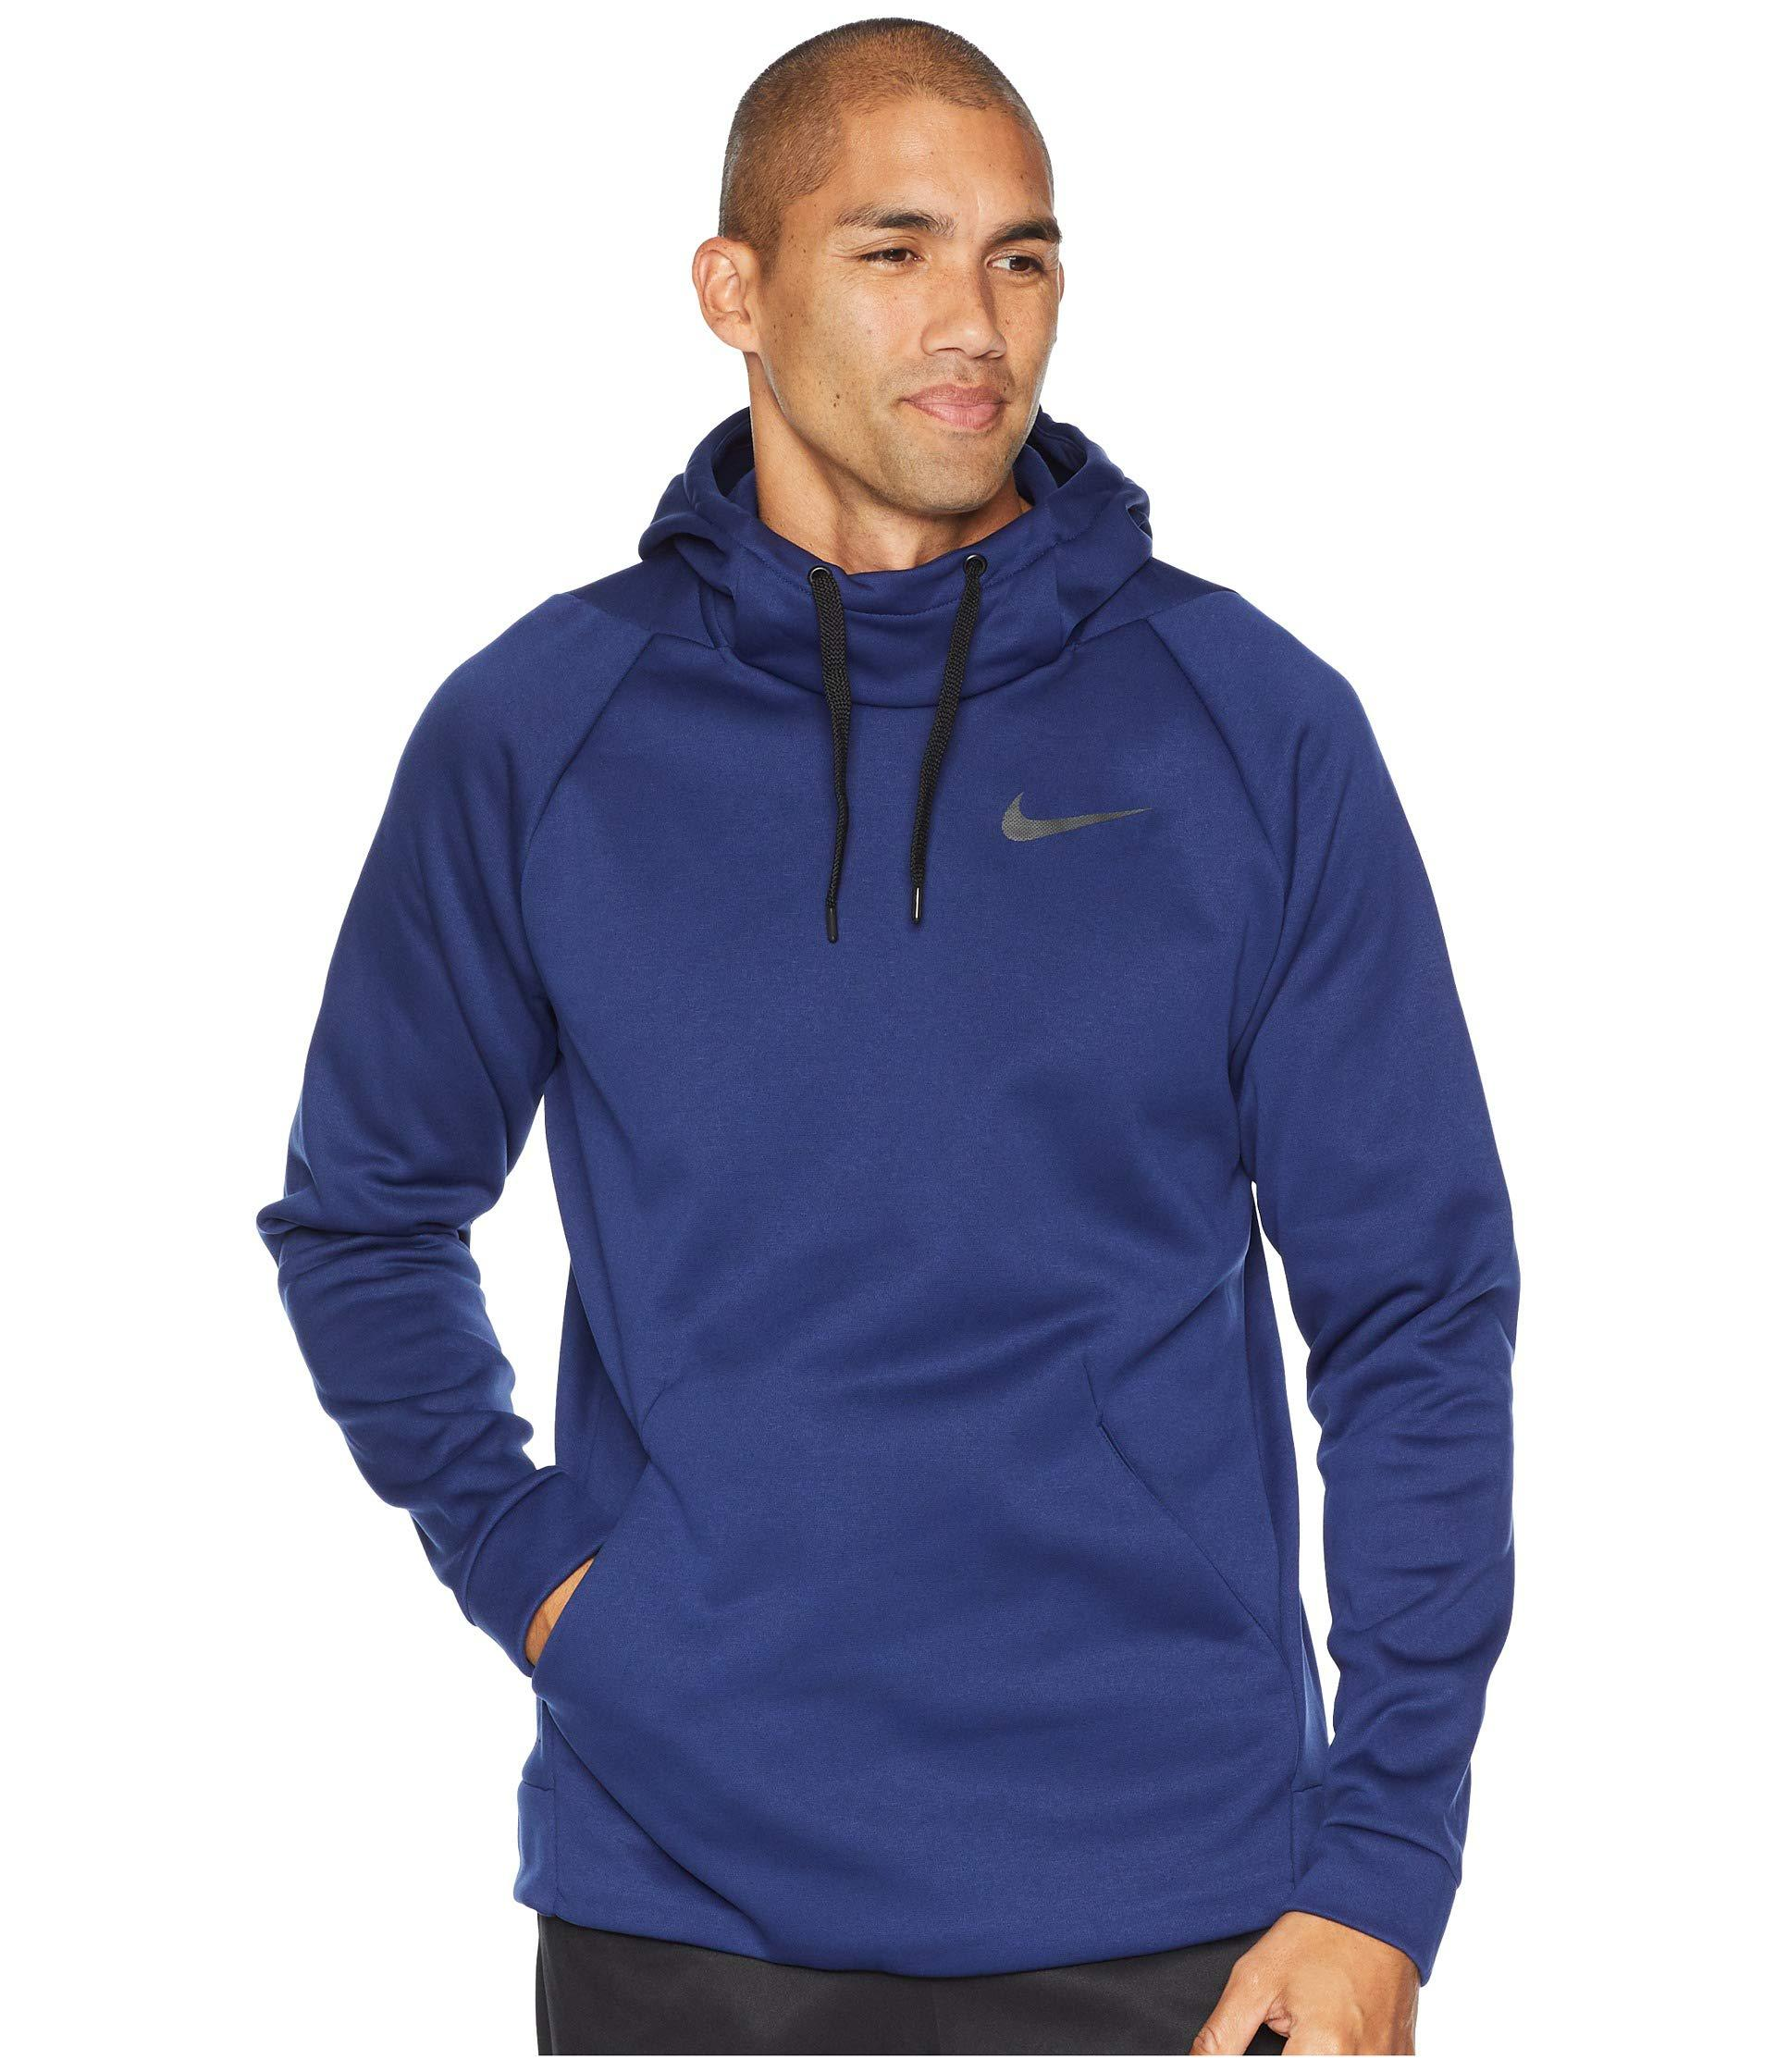 f6f0d48d9c14 Lyst - Nike Thermal Hoodie Pullover in Blue for Men